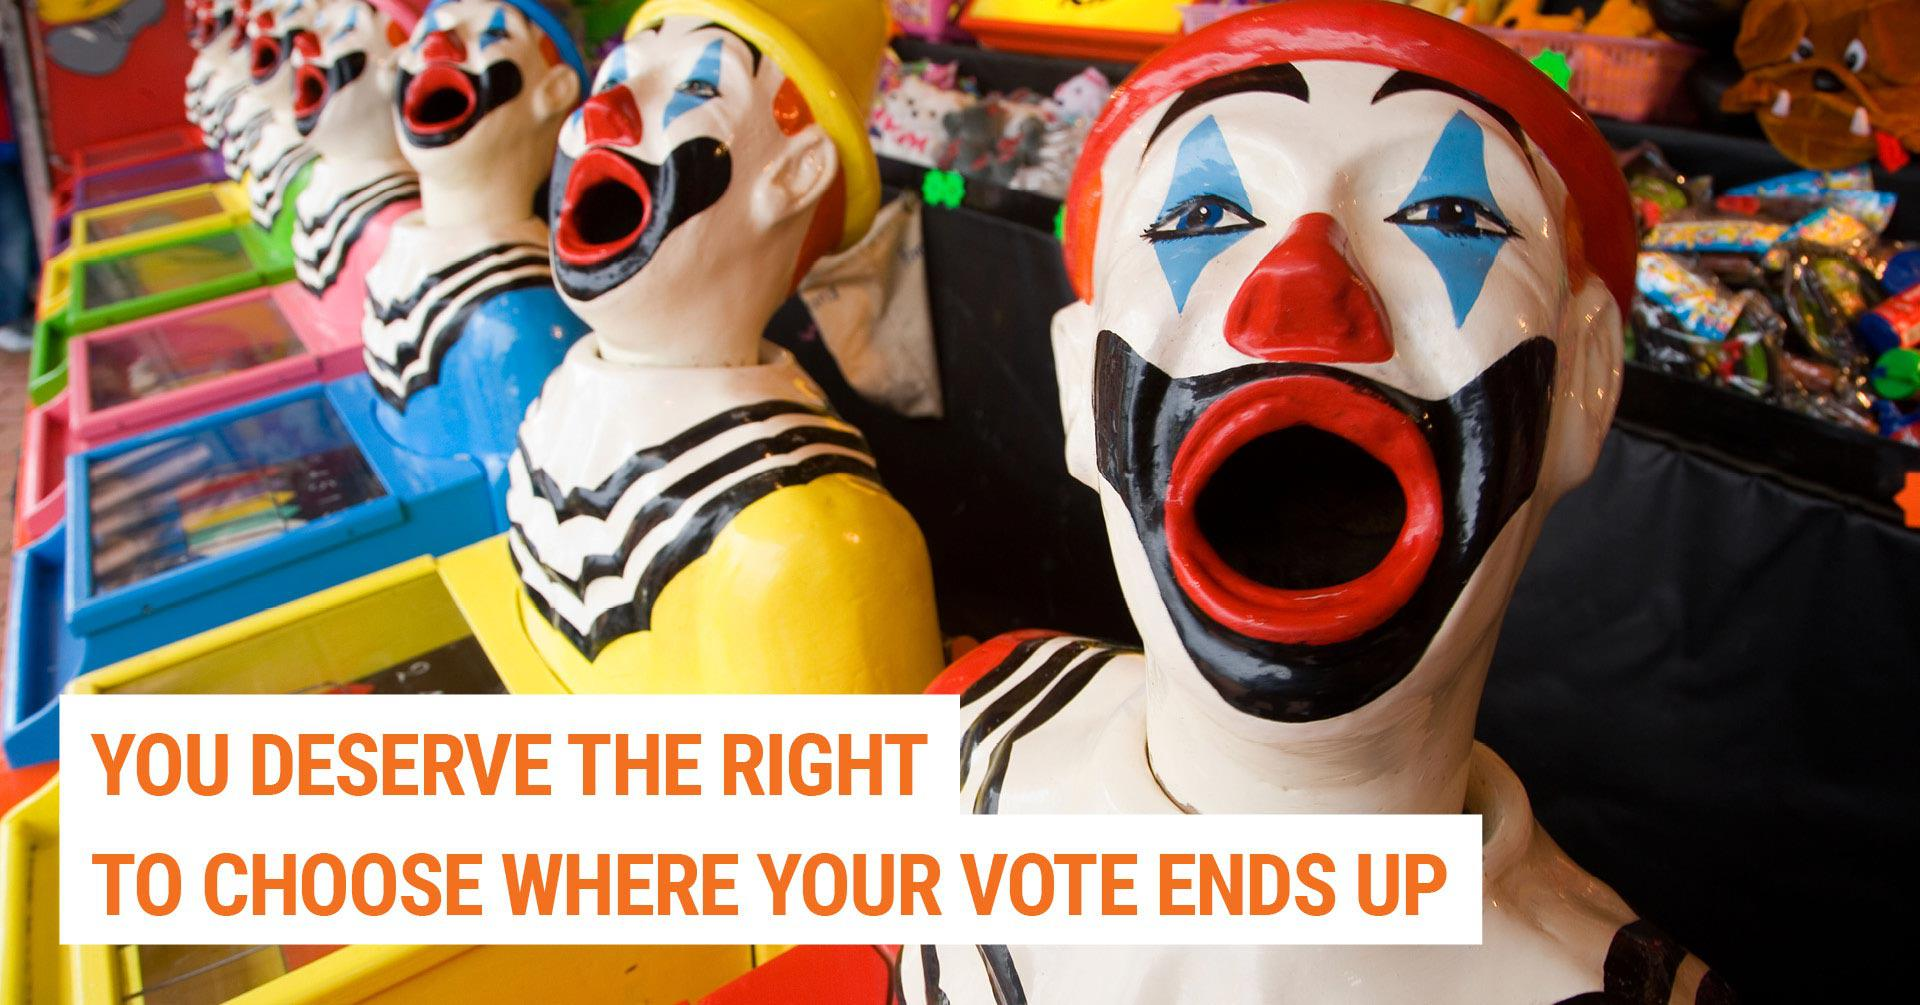 You deserve the right to choose where your vote ends up